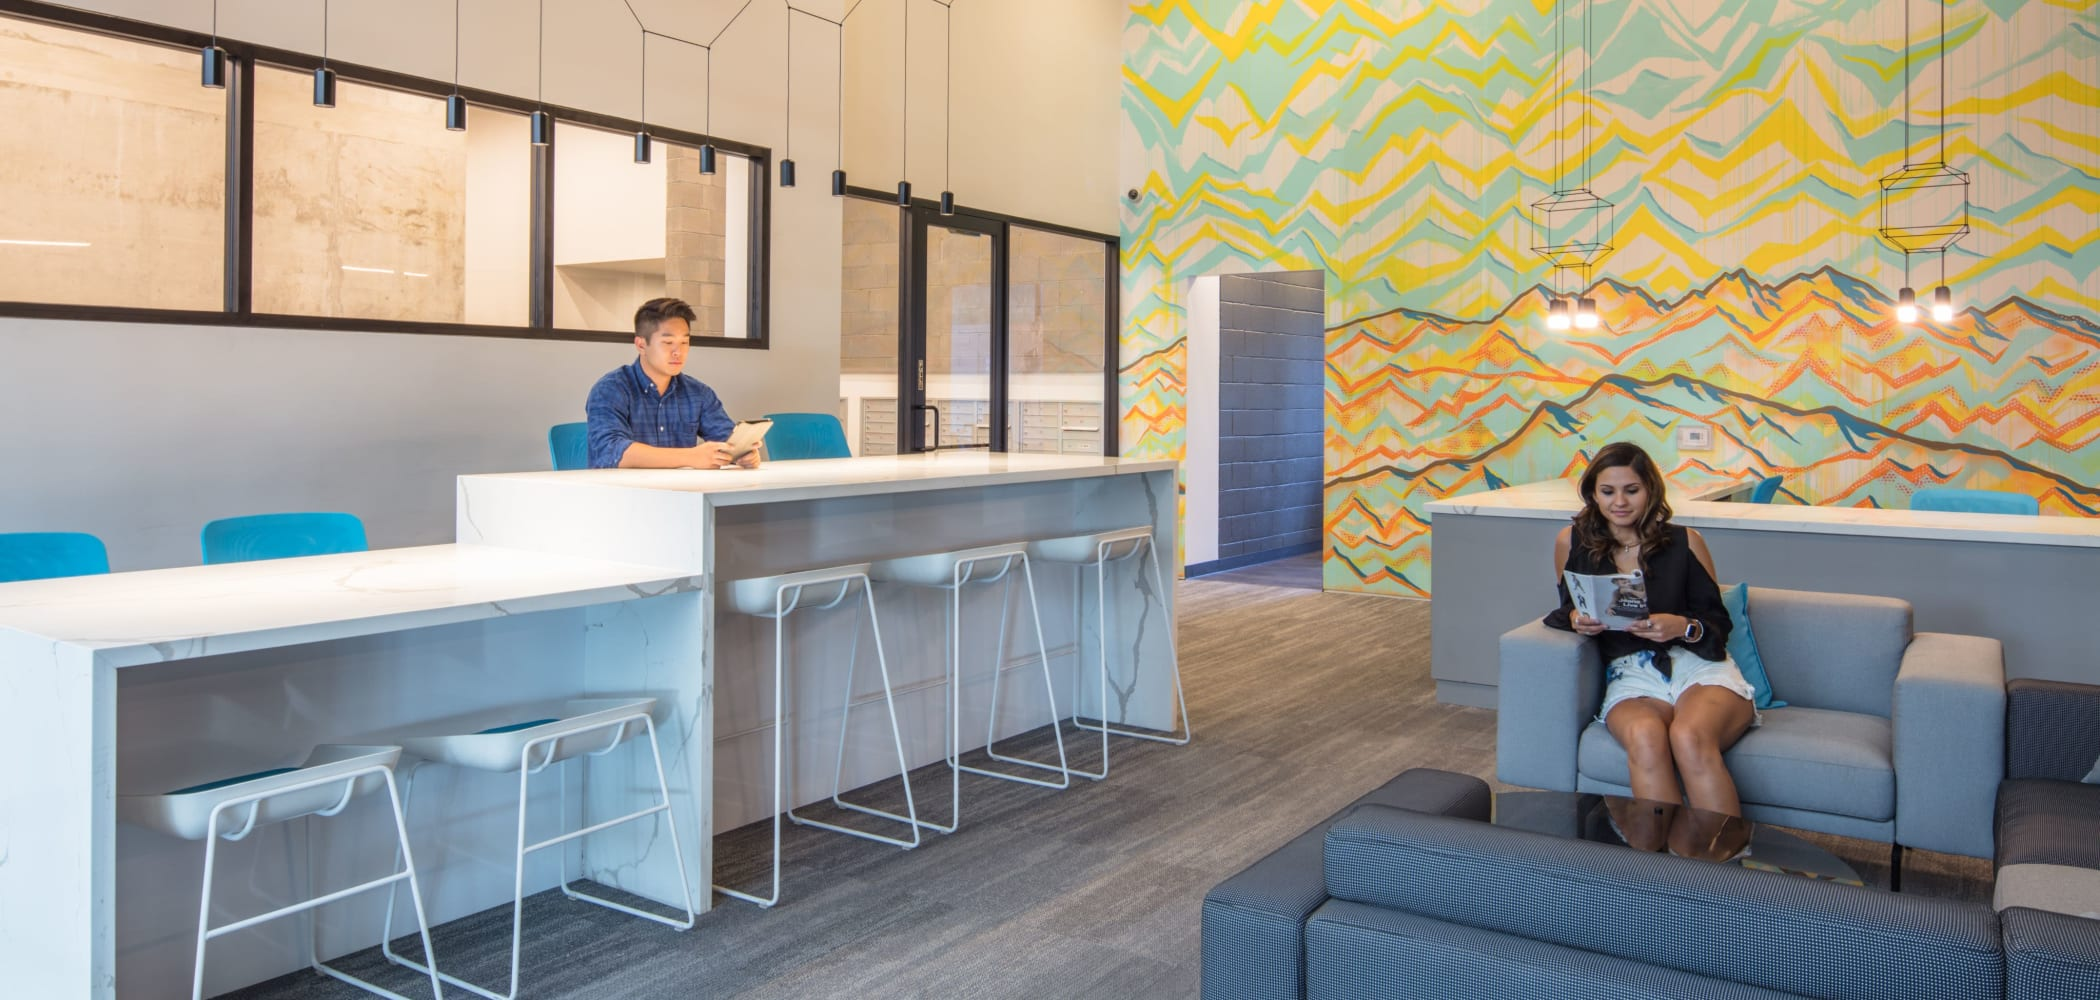 Community space for studying at RISE on Apache in Tempe, Arizona